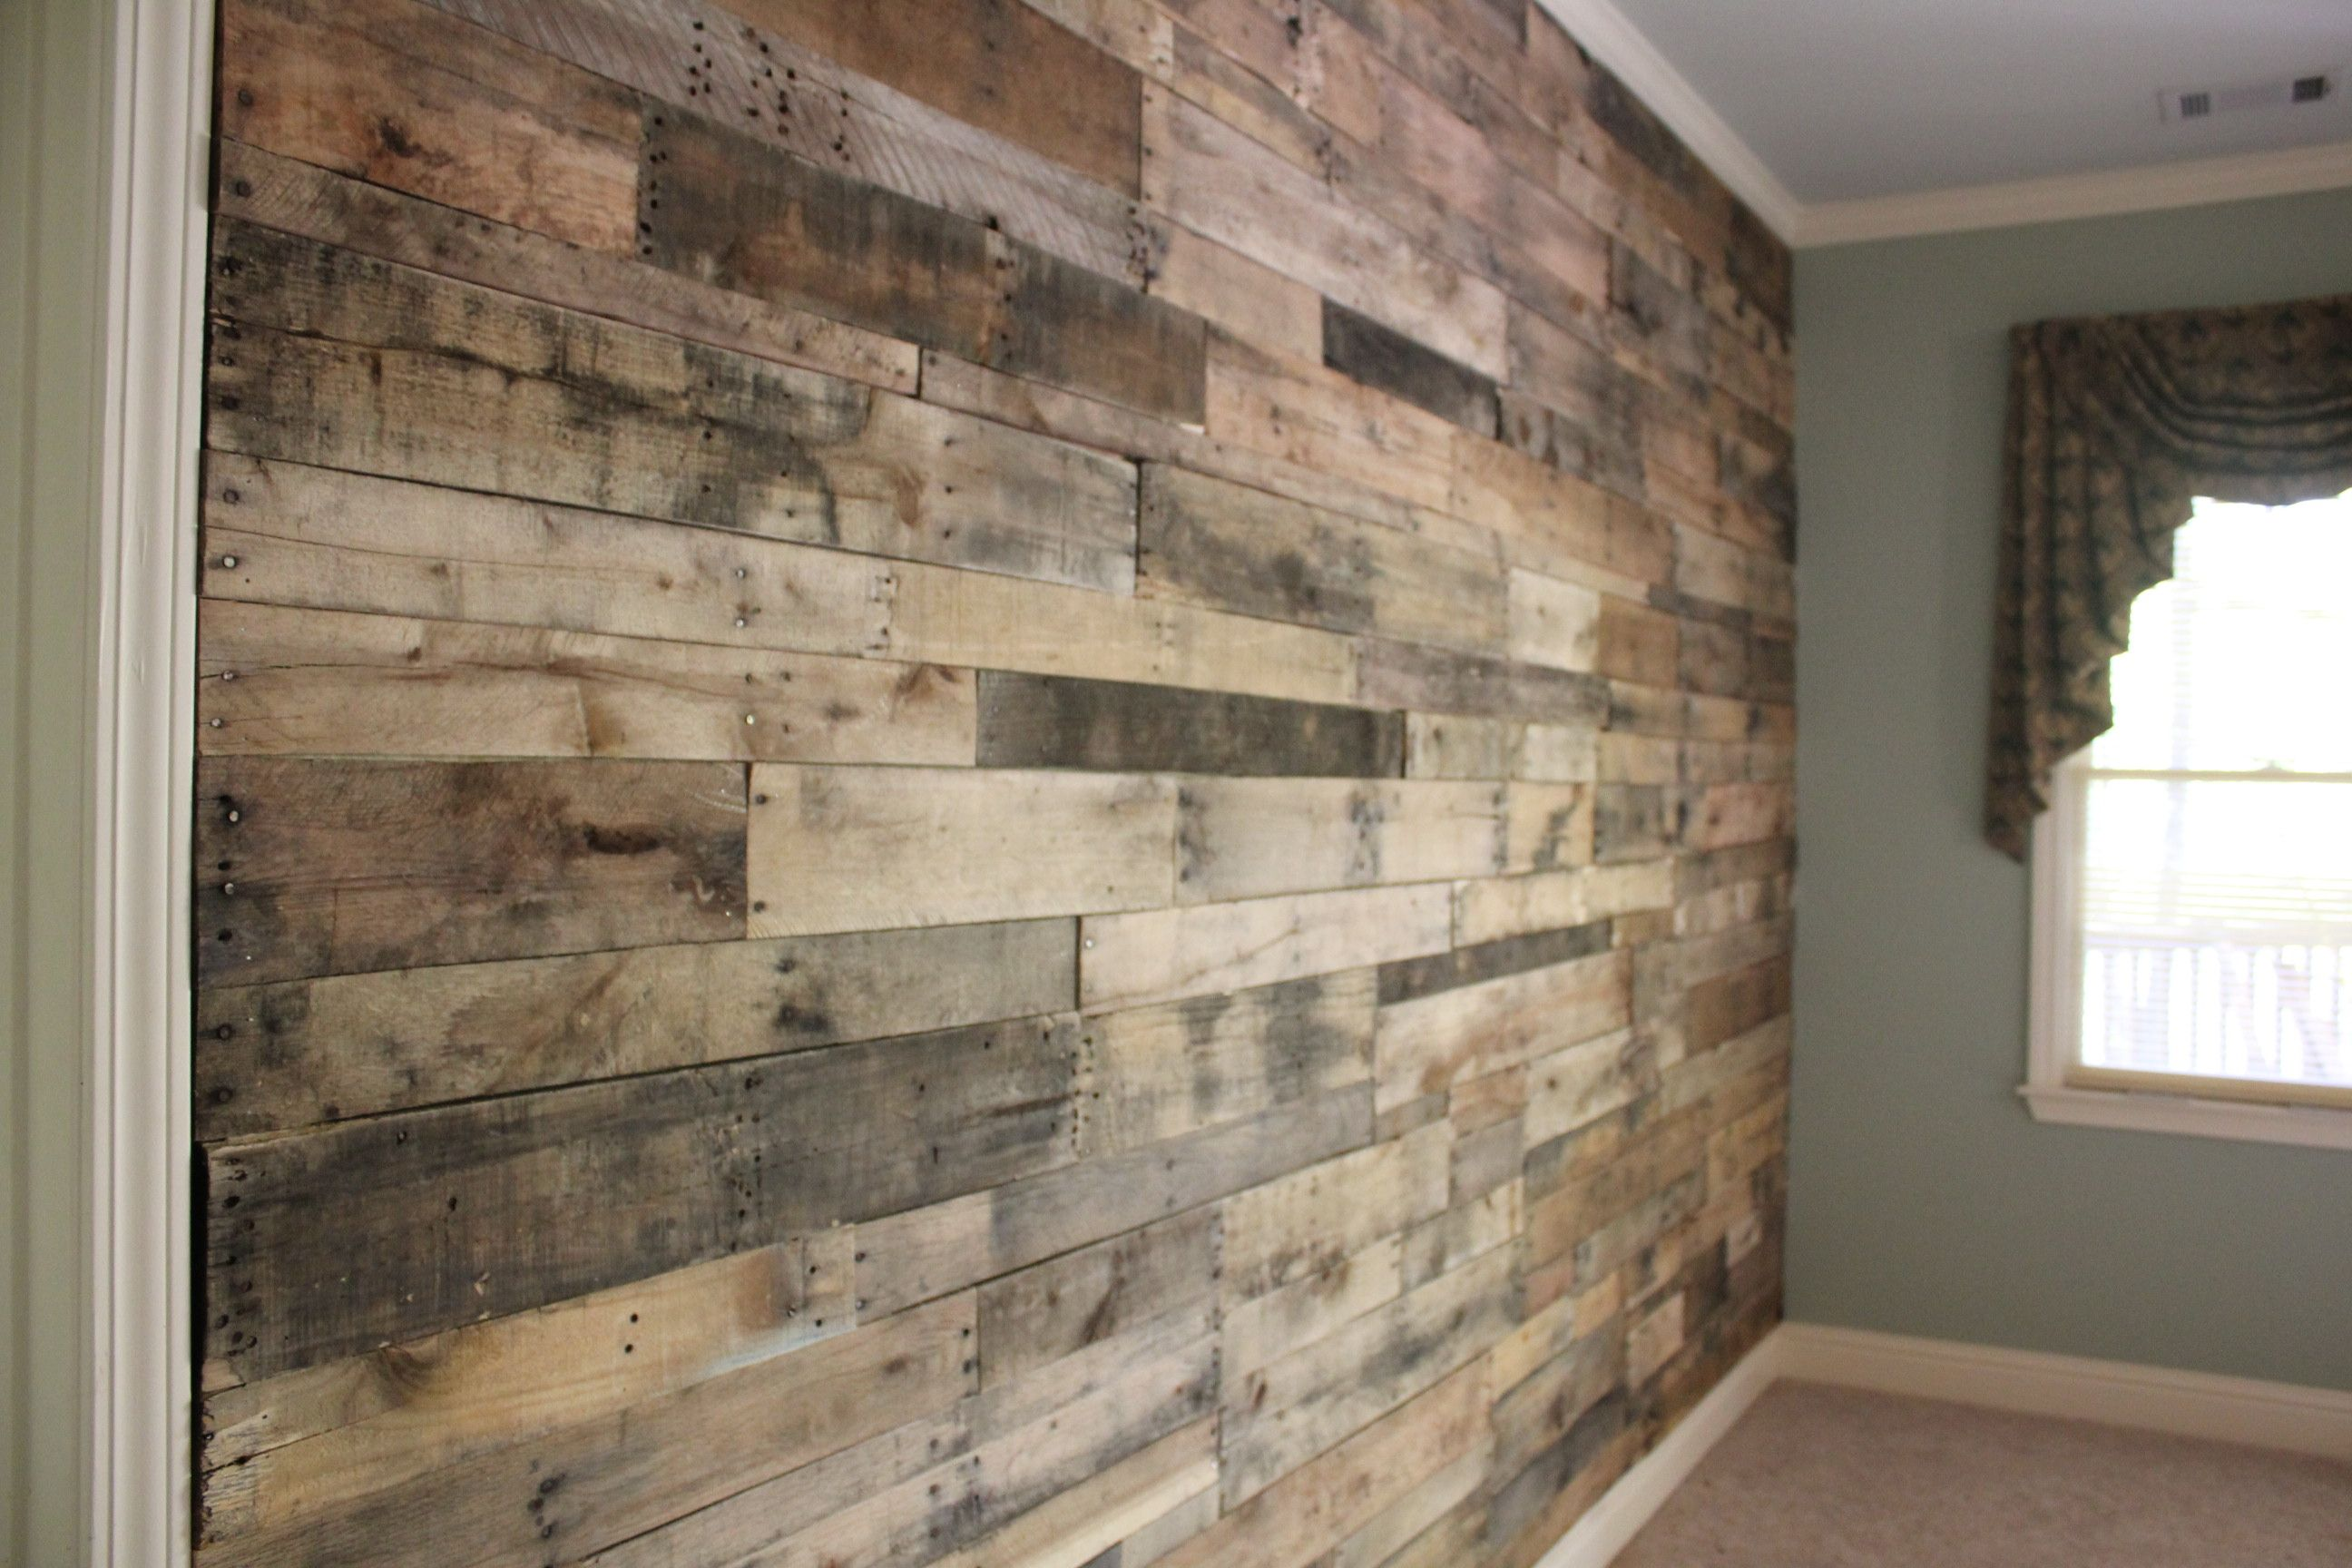 reused pallet facade google search facades and 1391 on pallet wall id=51710